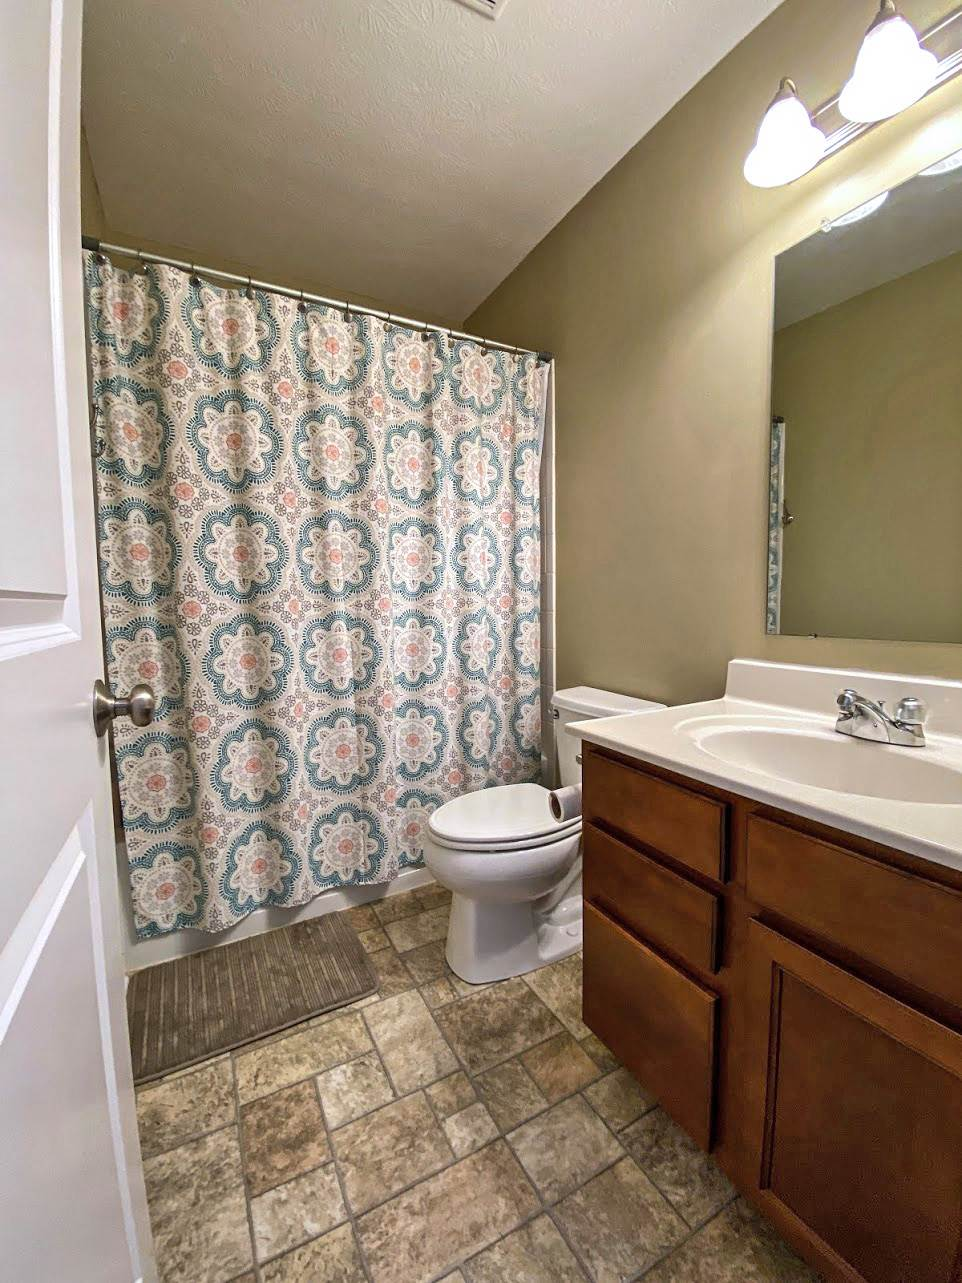 281 Butterfly Dr, Sunbury, OH 43074